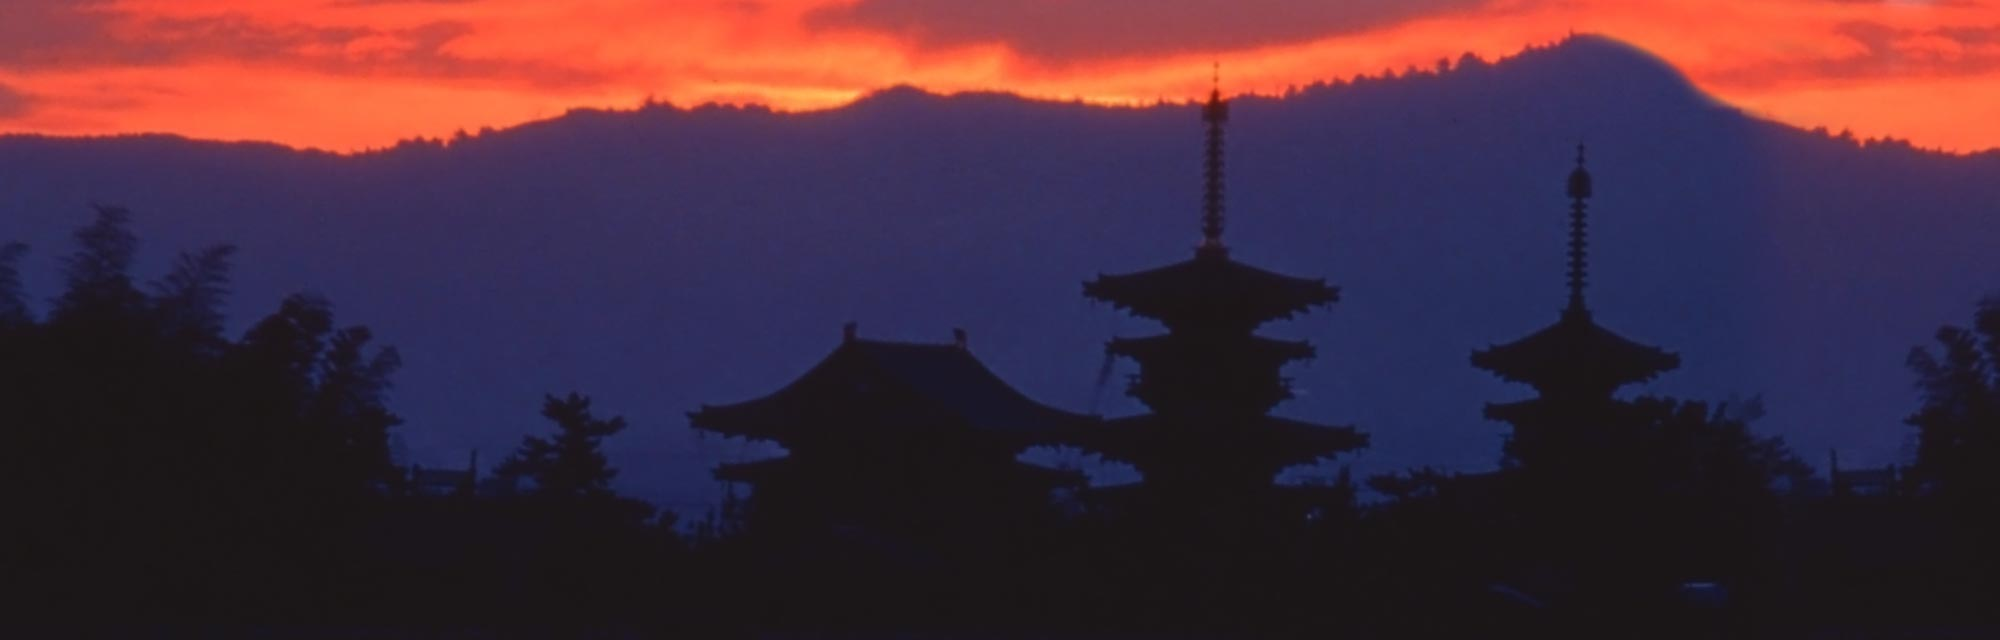 Yakushi-ji Temple - Japan National Tourism Organization